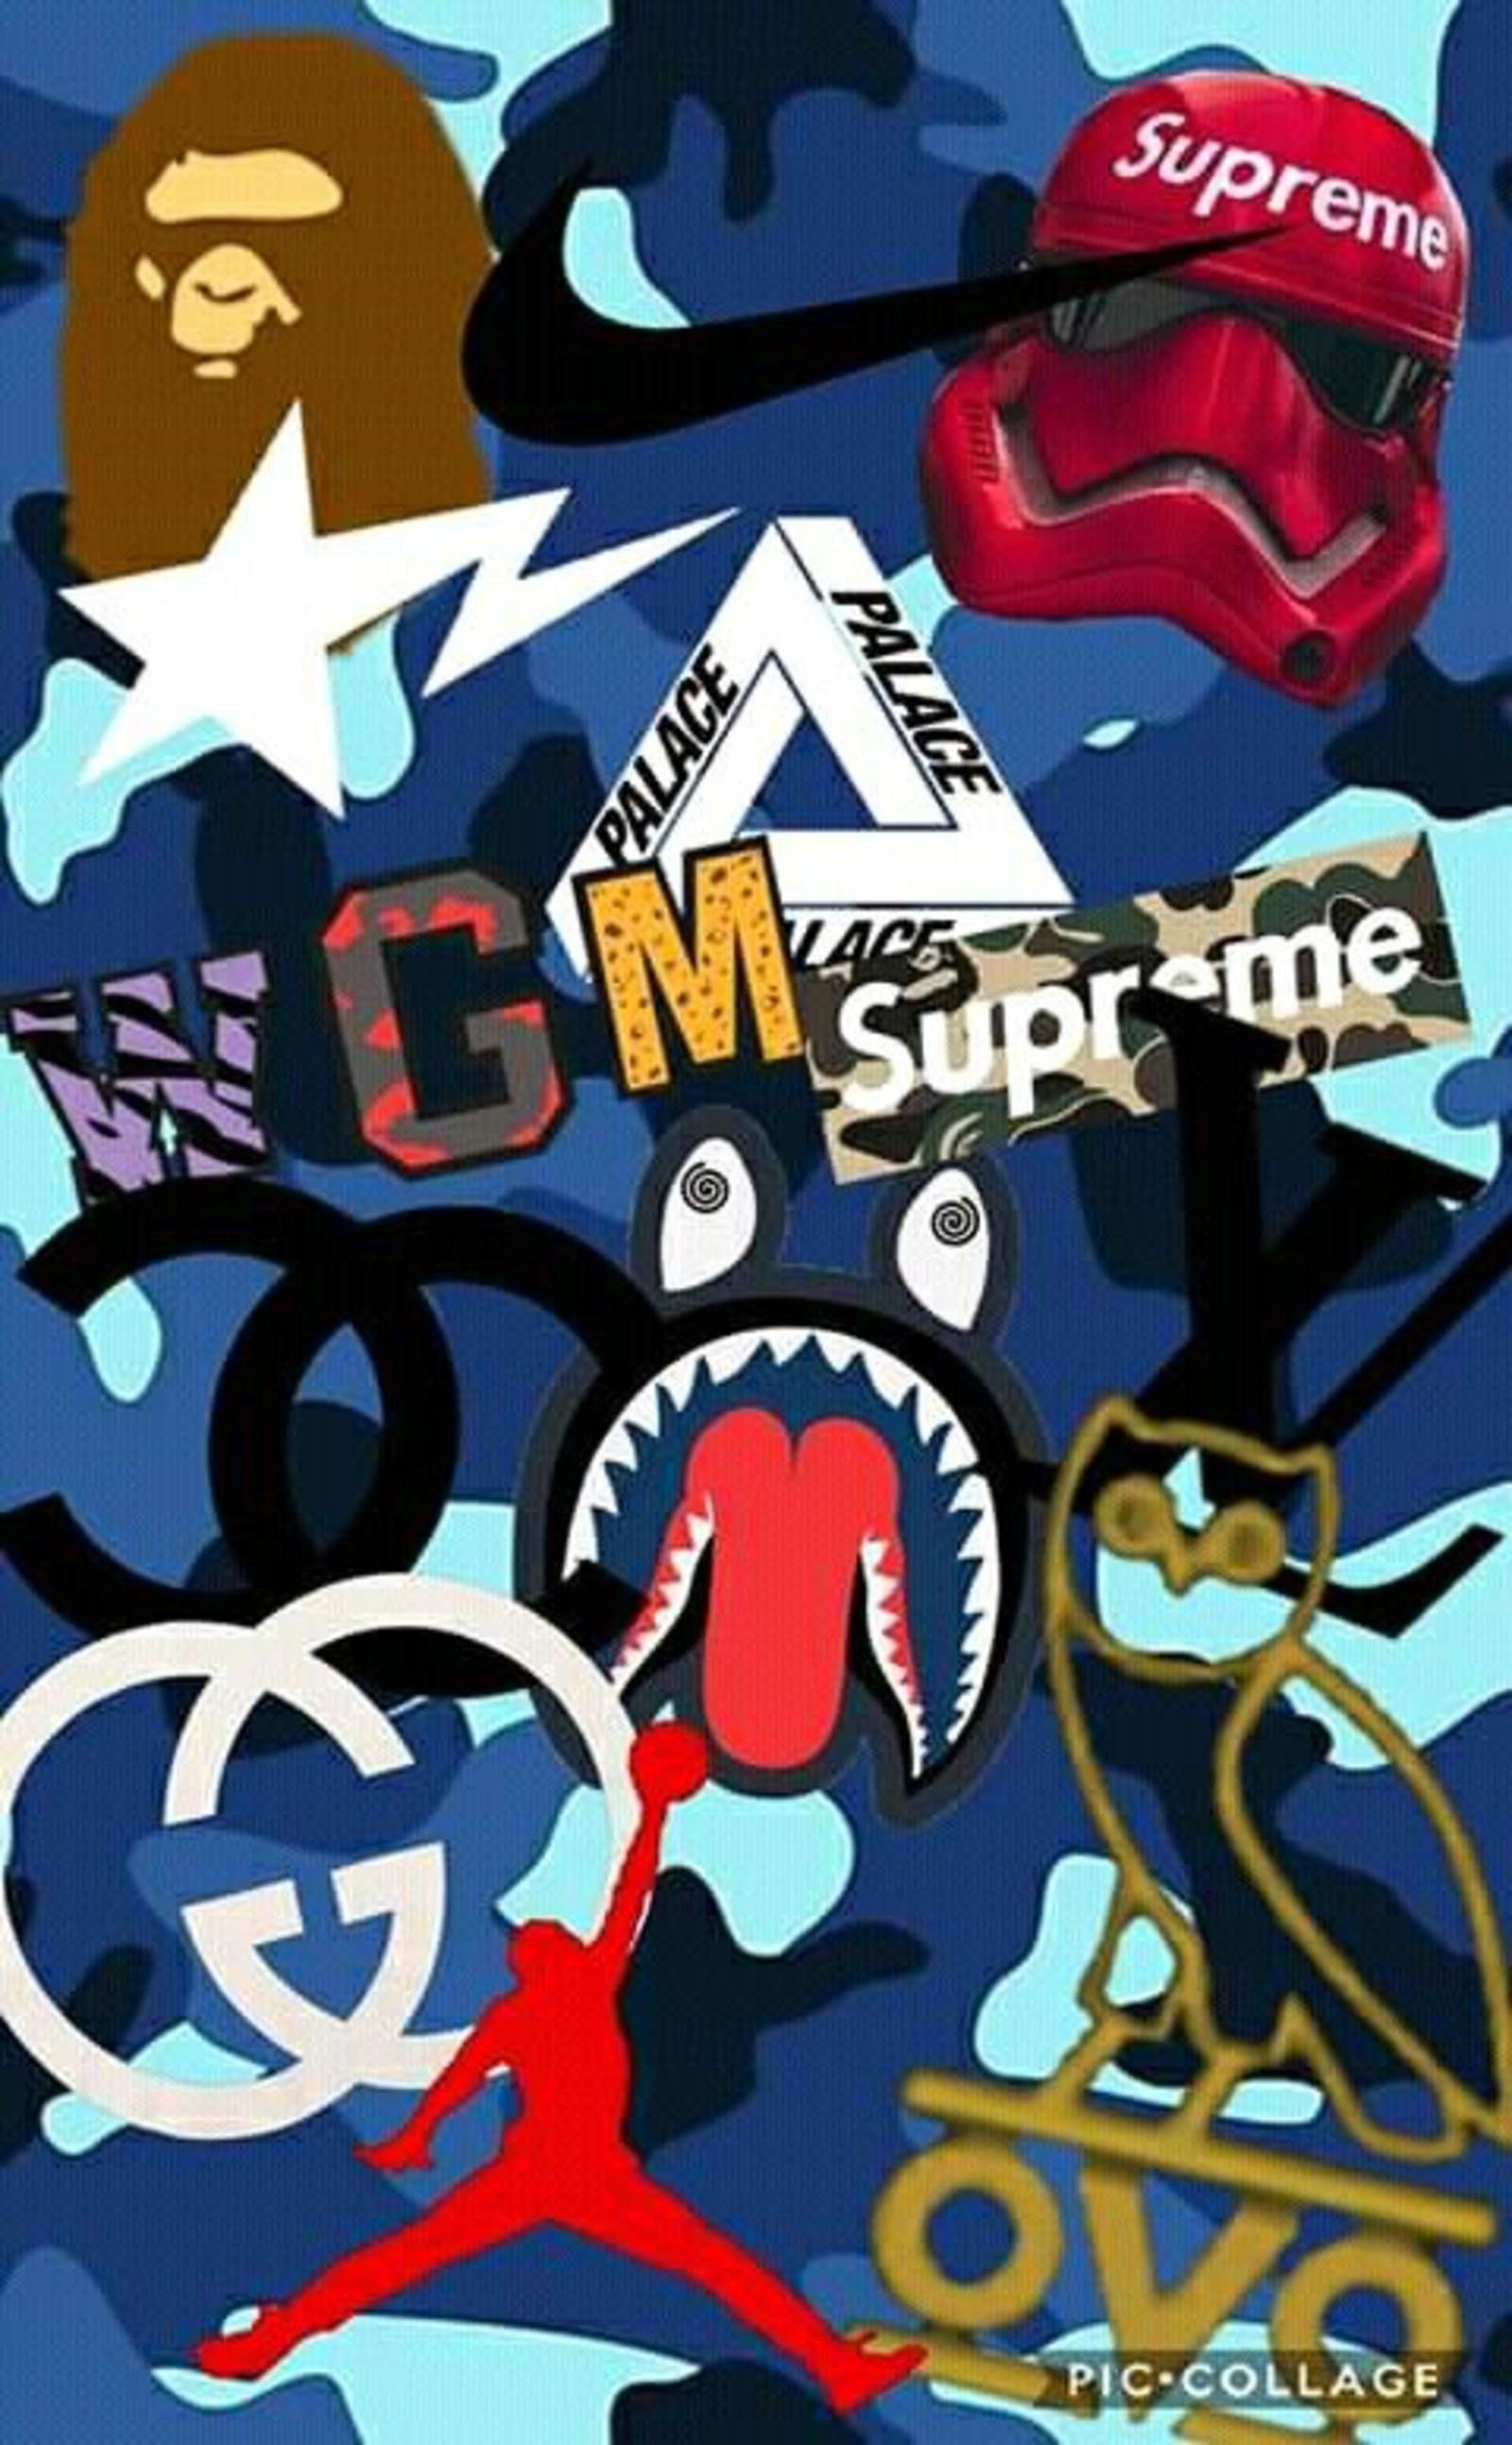 Cartoon Cool Supreme Wallpapers : cartoon, supreme, wallpapers, Supreme, Cartoons, Wallpapers, Wallpaper